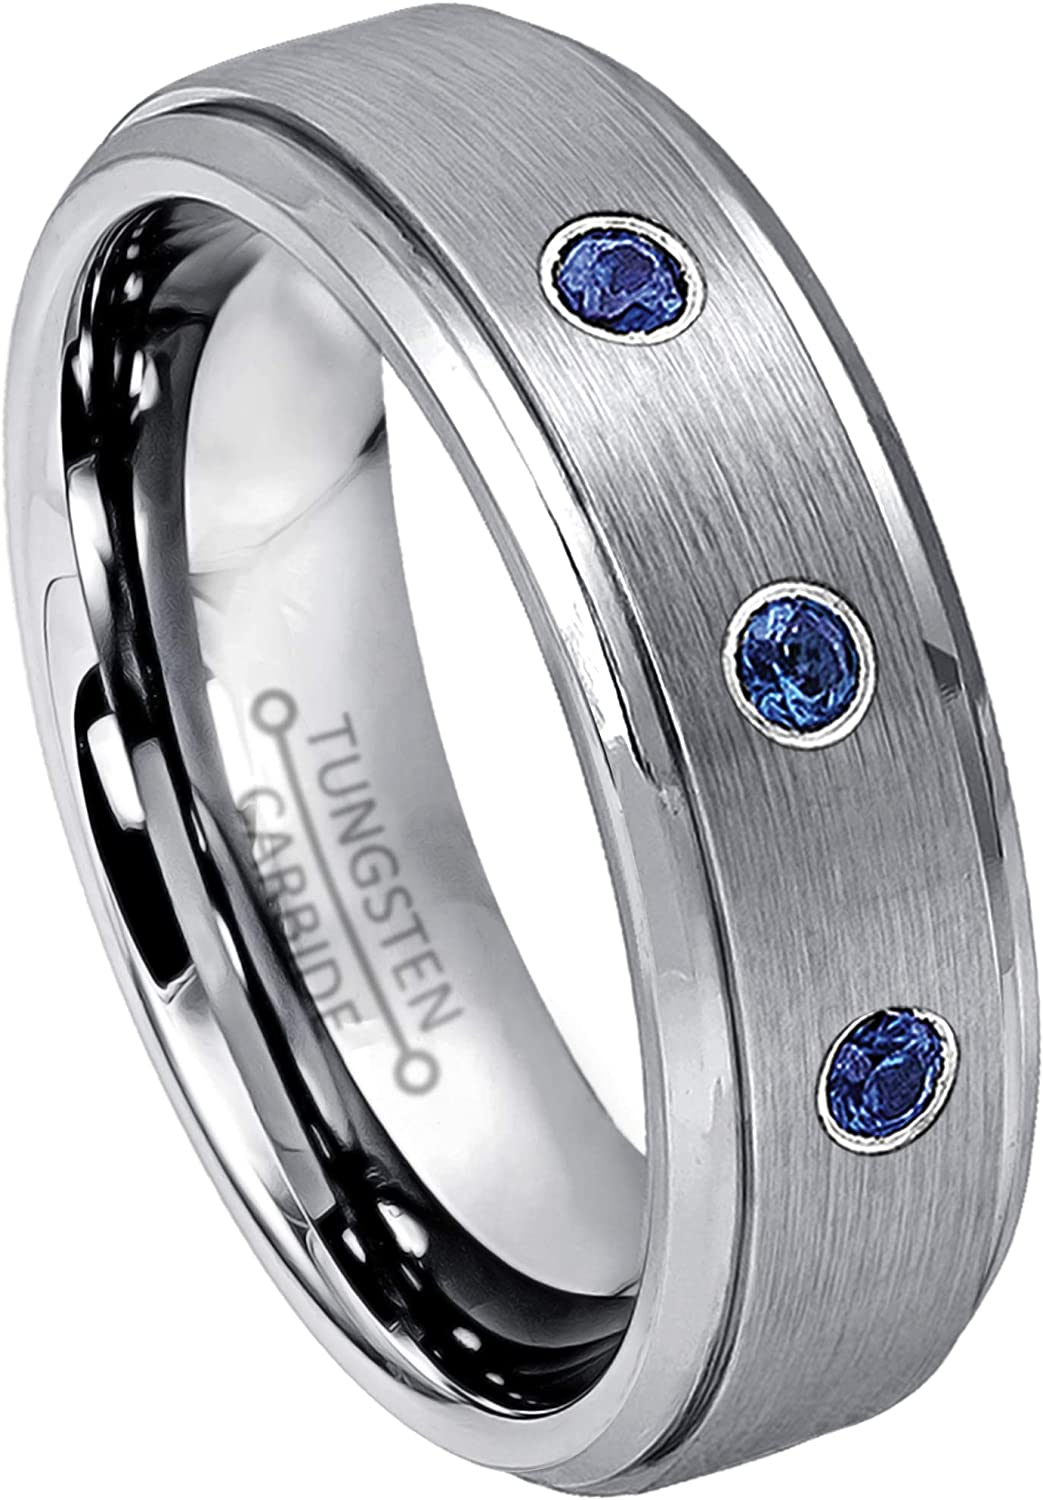 Jewelry Avalanche 0.07ct-0.021ctw Customizable 3-Stone Tungsten Birthstone Ring 6MM Brushed Finish Comfort Fit Stepped Edge Tungsten Carbide Wedding Band